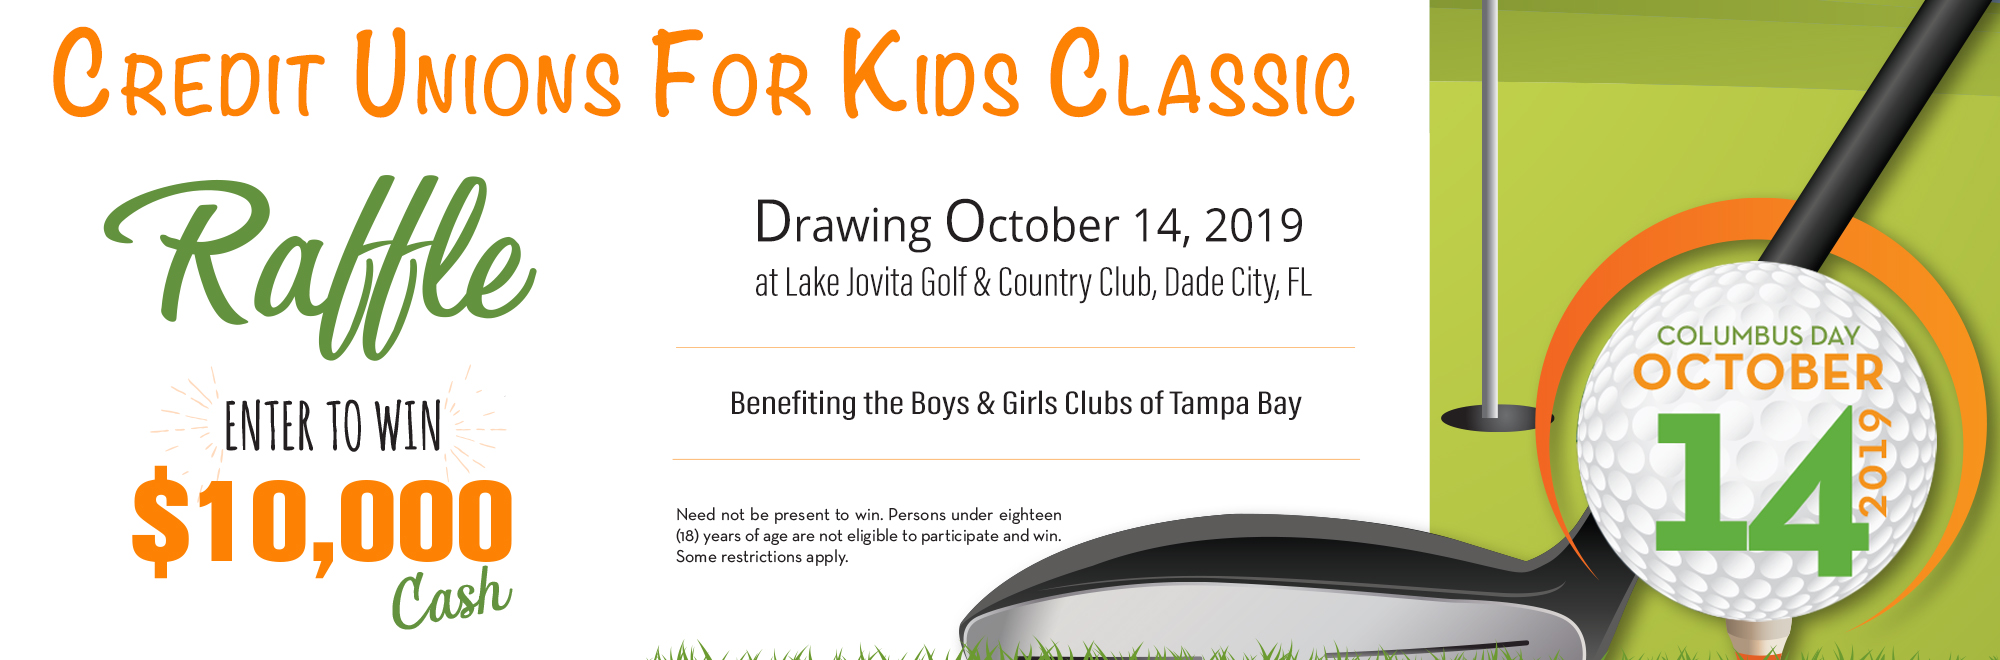 Credit Union For Kids Golf is hosting a drawling on October 14th, 2019 for a chance to win $10,000! Raffle tickets are available at all SACFCU branches.